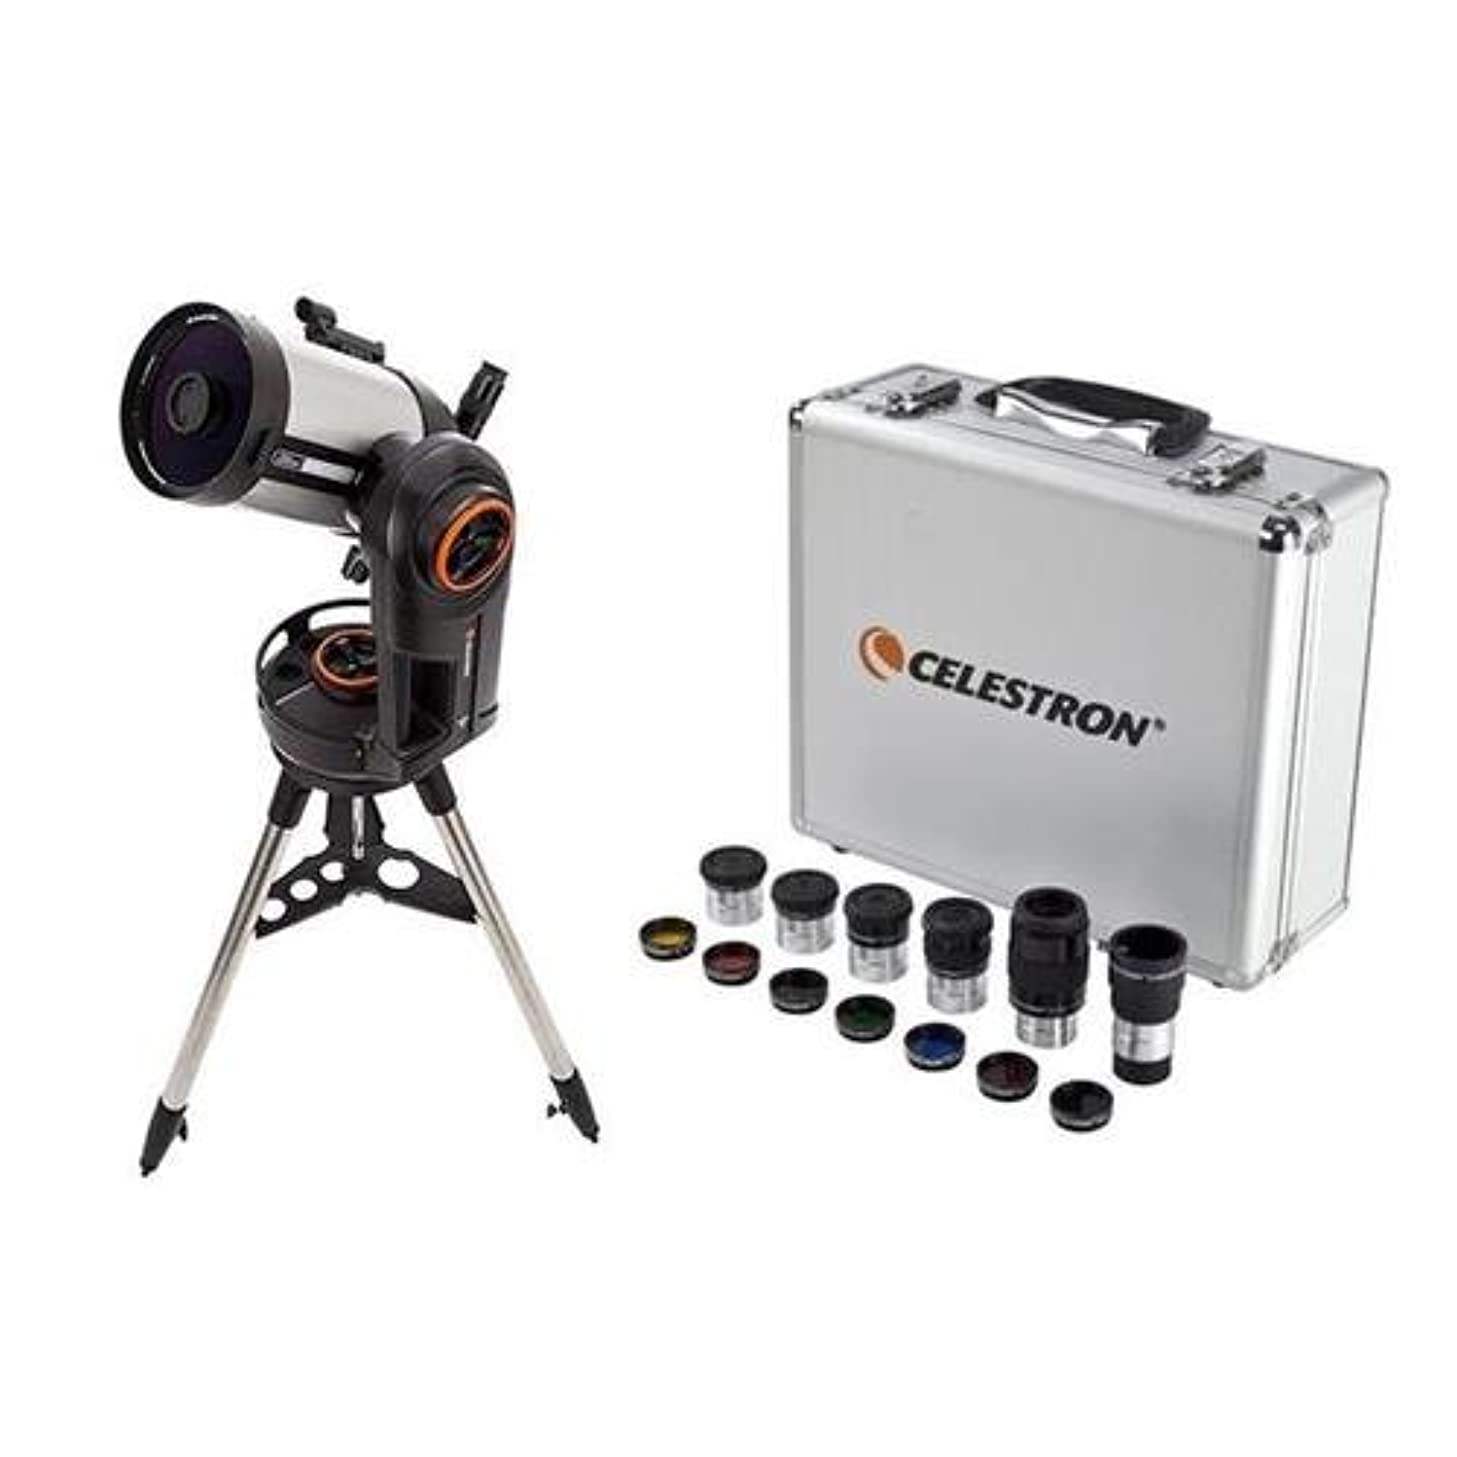 Celestron NexStar Evolution 6, Schmidt-Cassegrain Telescope with Integrated WiFi - with Deluxe Accessory Kit (5 Plossl Eyepieces, 1.25in Barlow Lens, 1.25in Filter Set, Accessory Carry Case